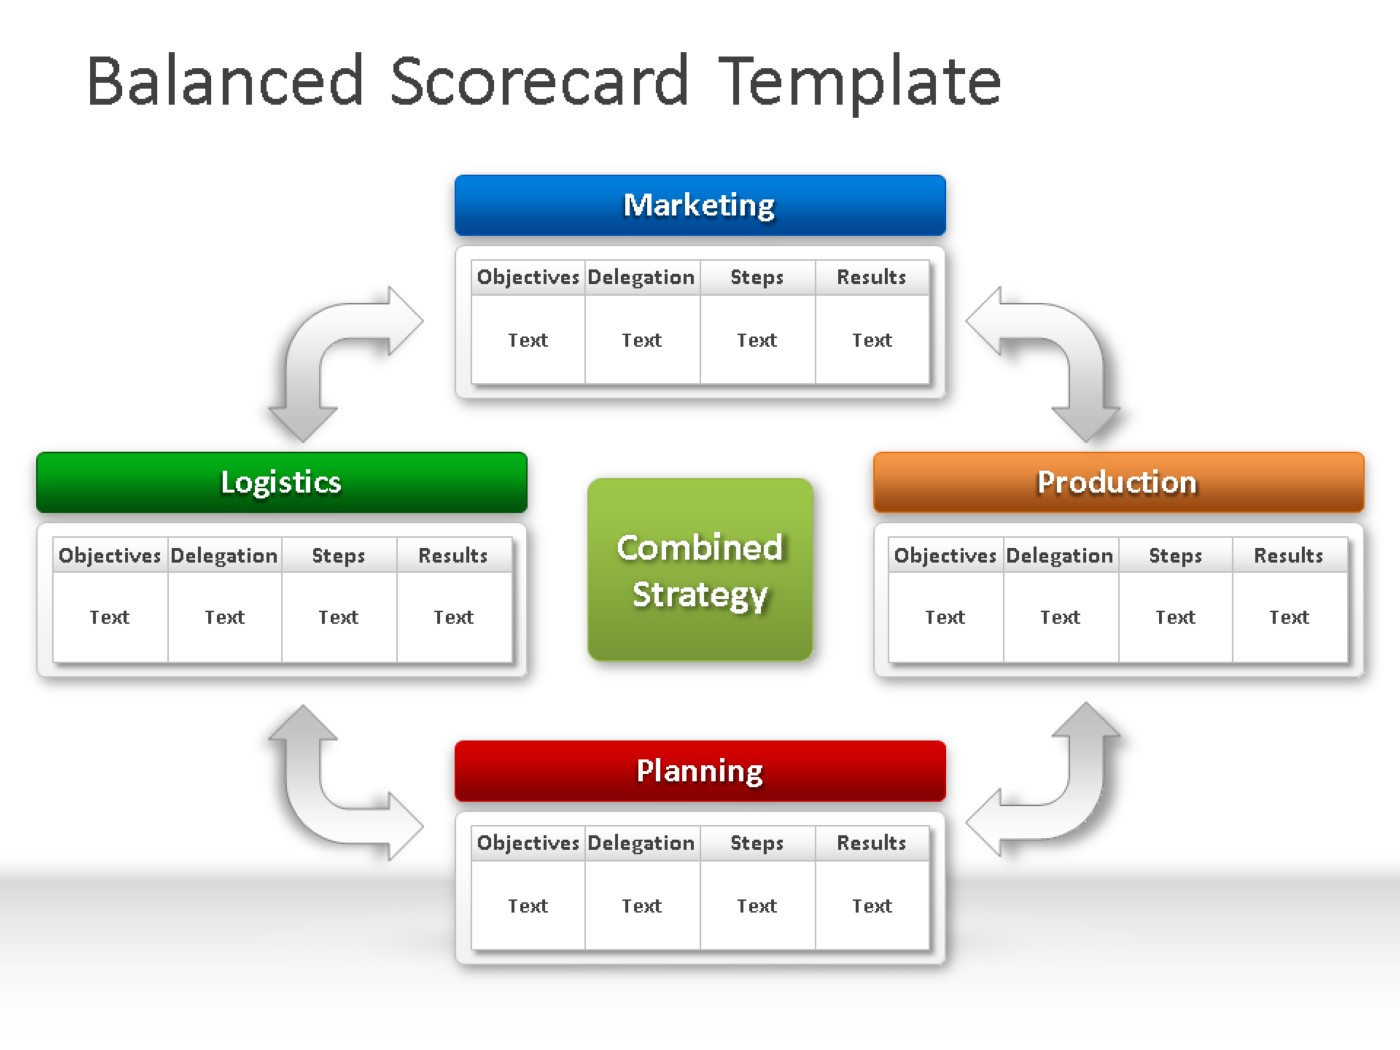 Free balanced scorecard powerpoint template powerpoint free balanced scorecard powerpoint template powerpoint presentation ppt toneelgroepblik Image collections